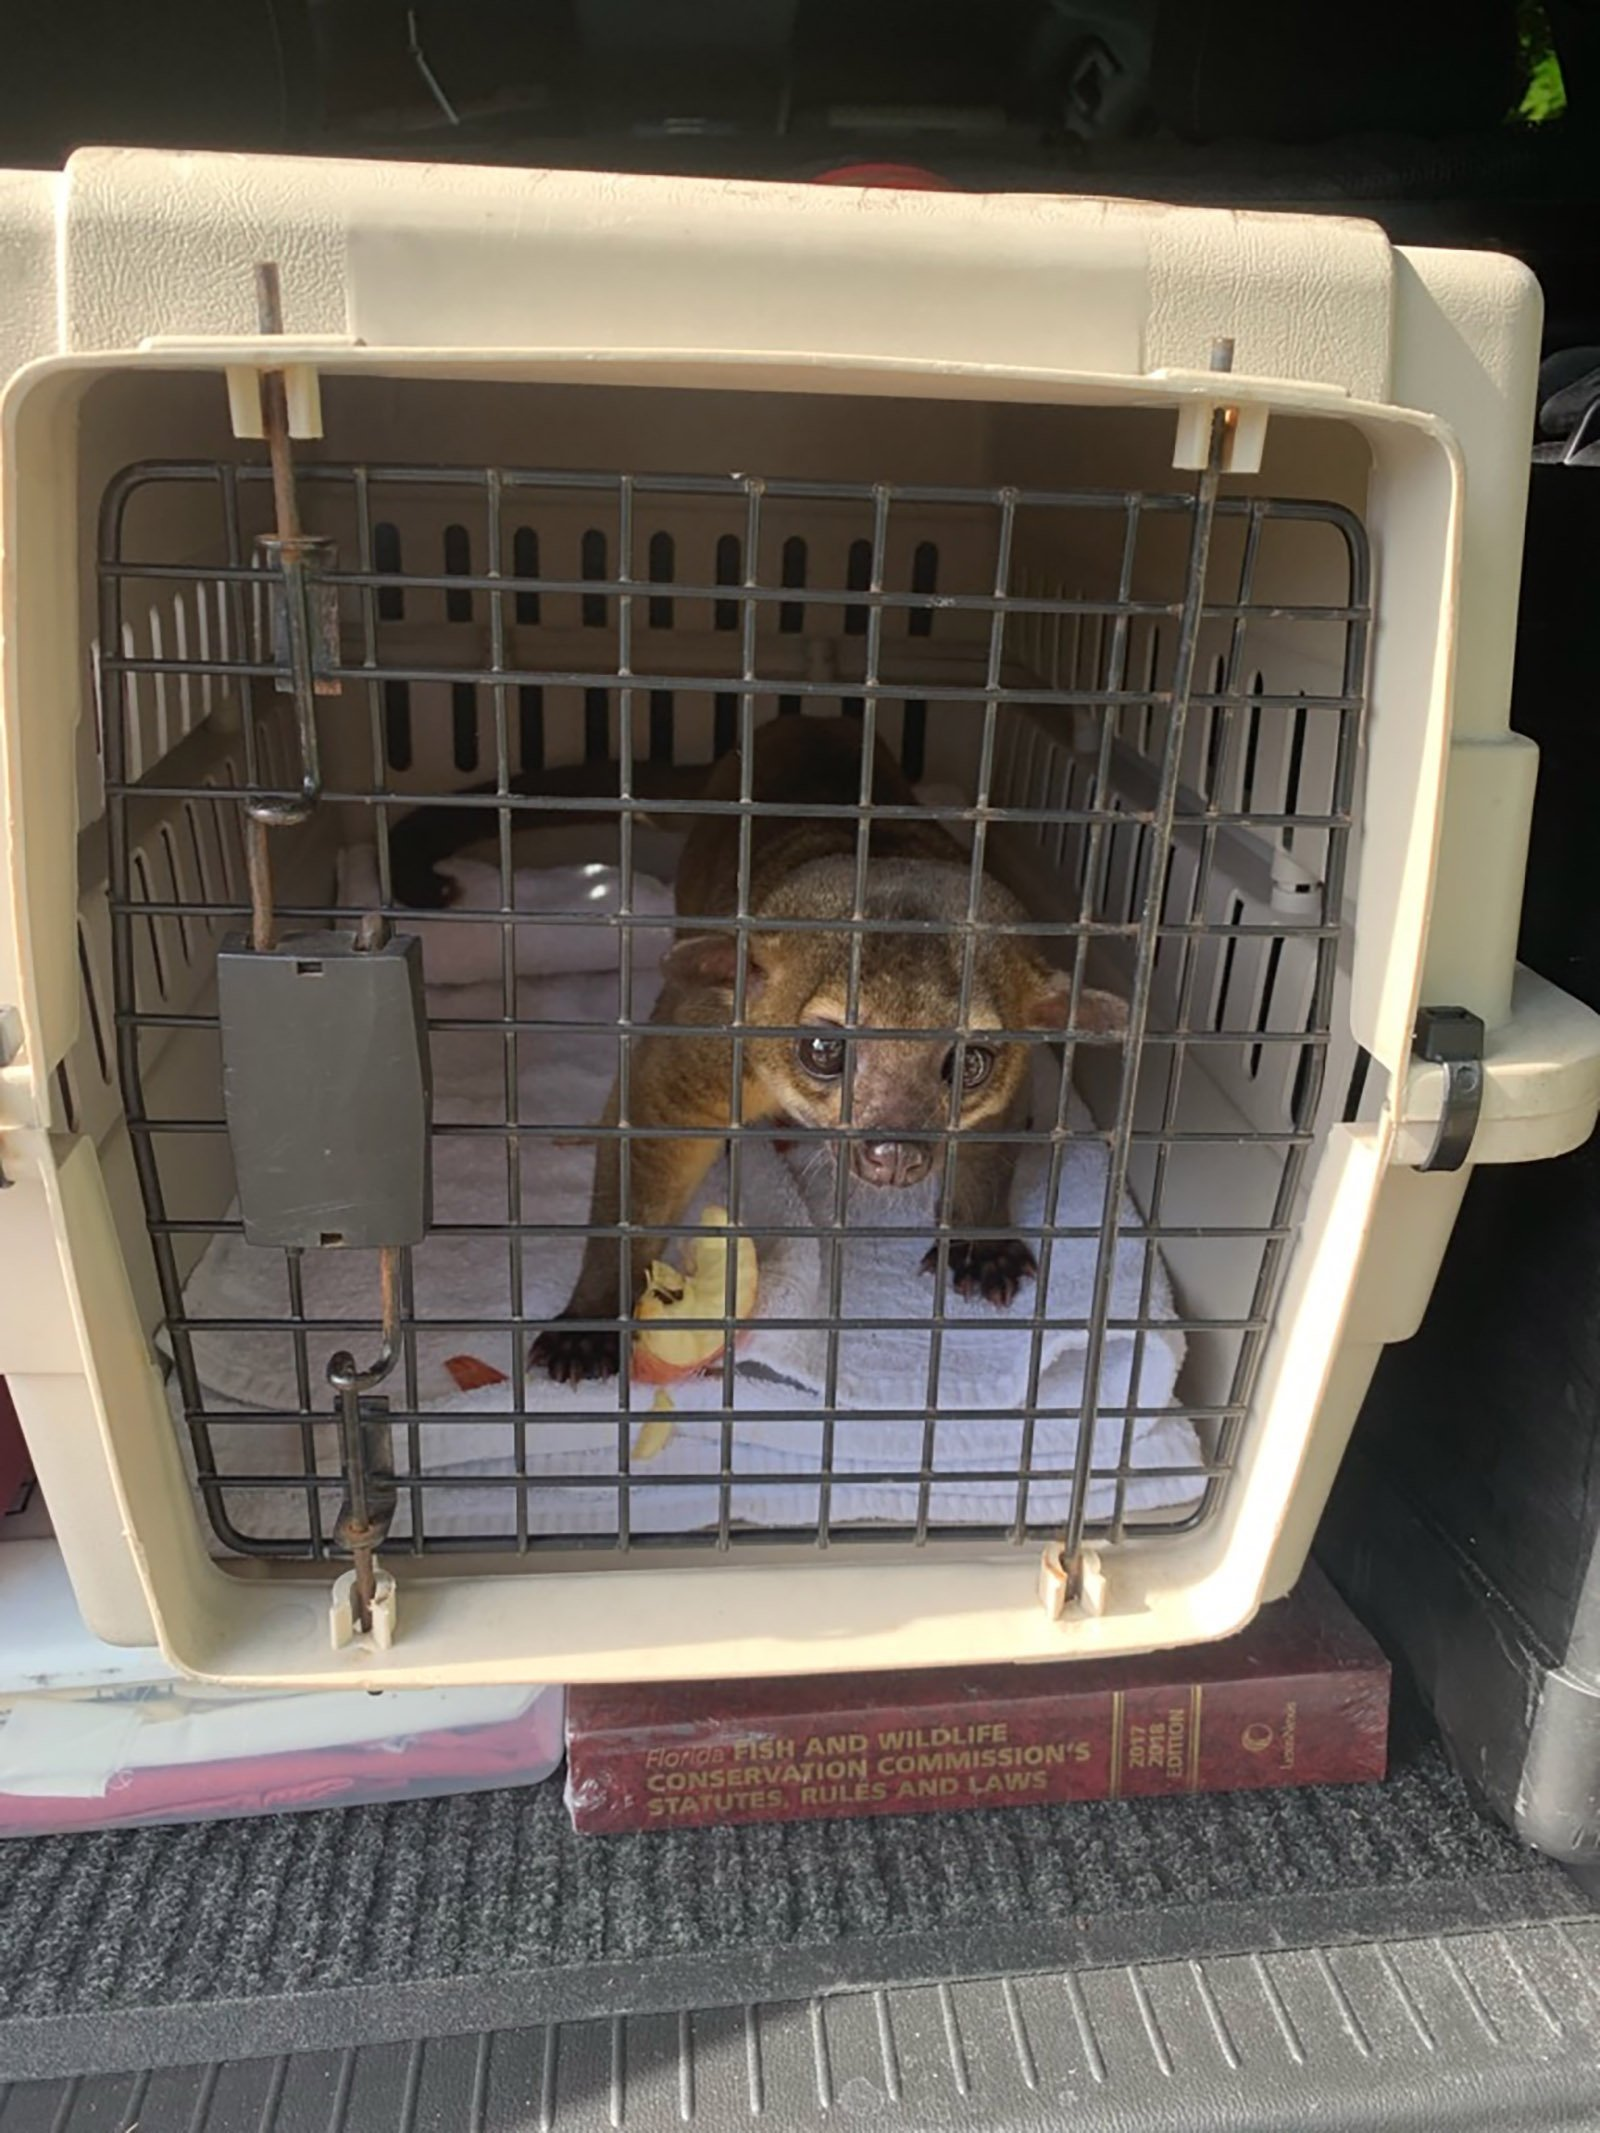 A tiny kinkajou sneaked into a Florida home and attacked a man